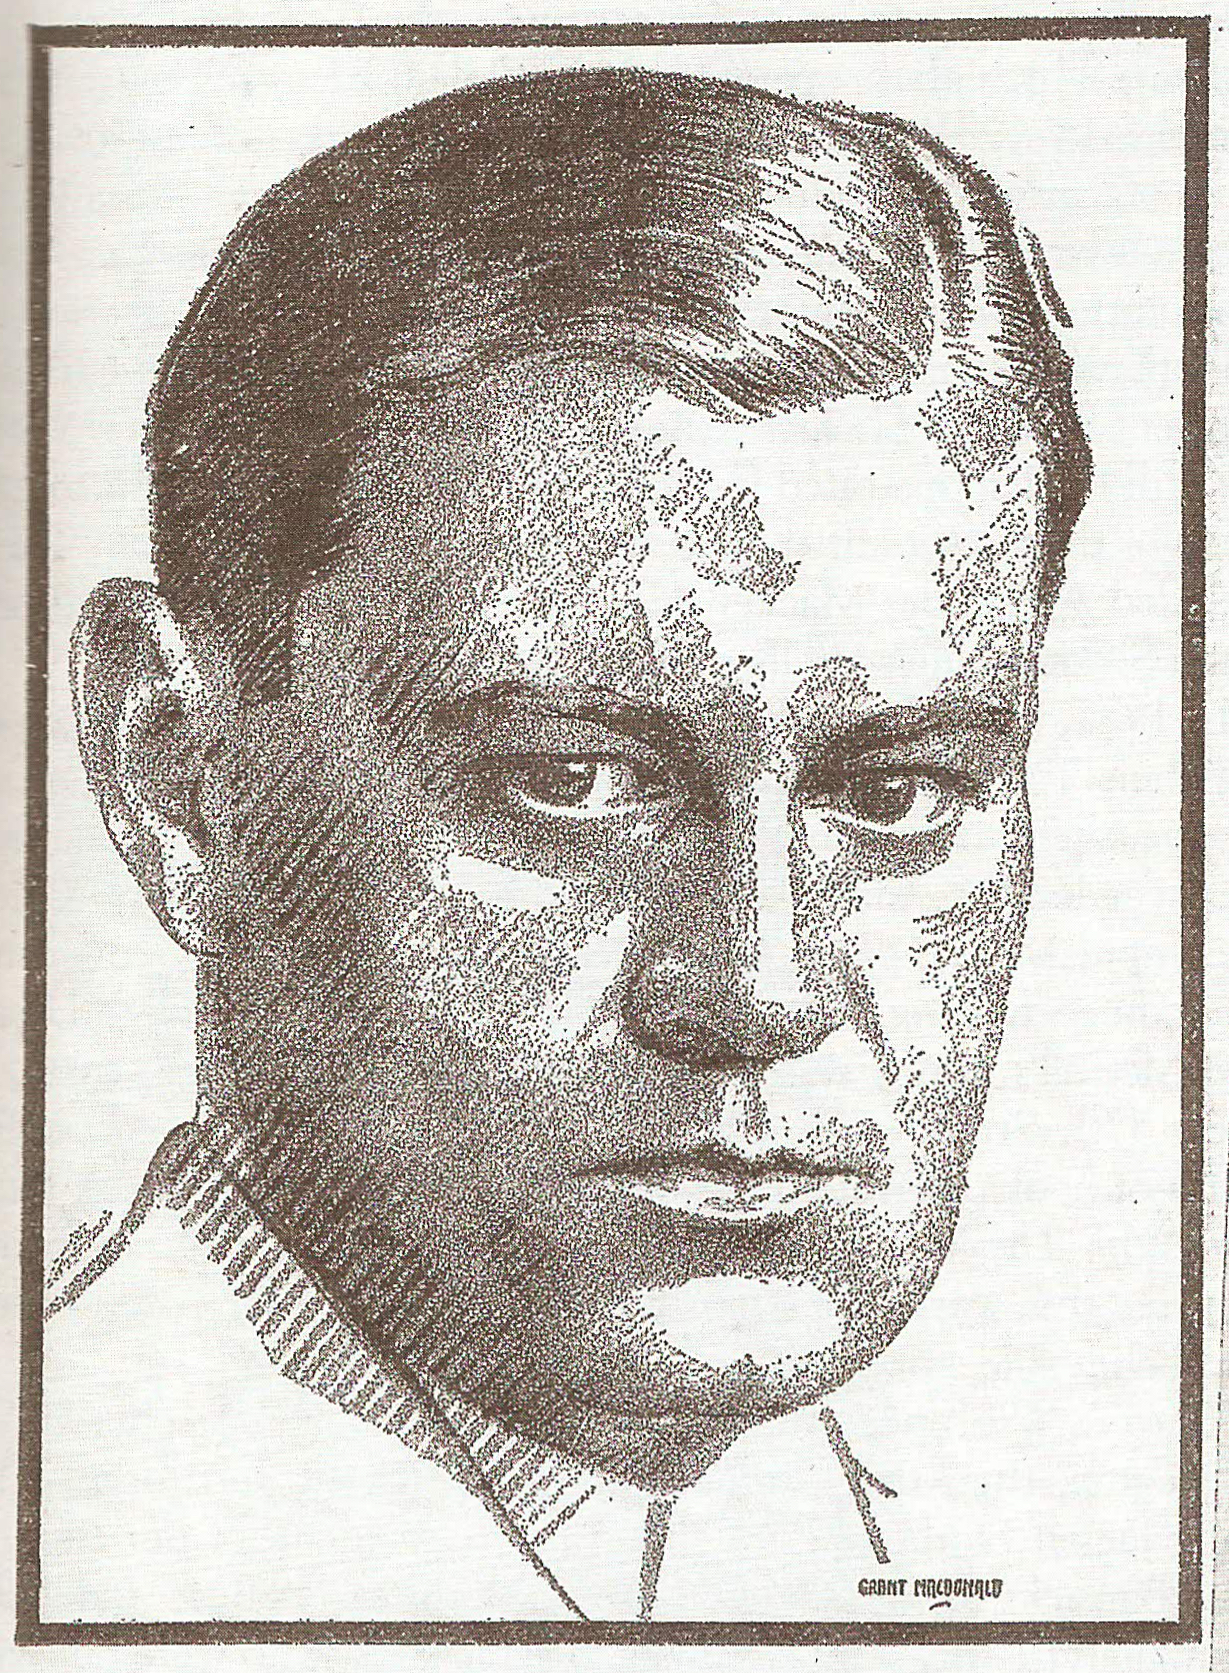 """This portrait of Merrill Denison by Grant Macdonald first appeared in  The Toronto Star Weekly , March 15, 1930. In  Bon Echo: The Denison Years , Mary Savigny included the image in a chapter entitled """"Keeping the Wolf from the Door."""""""